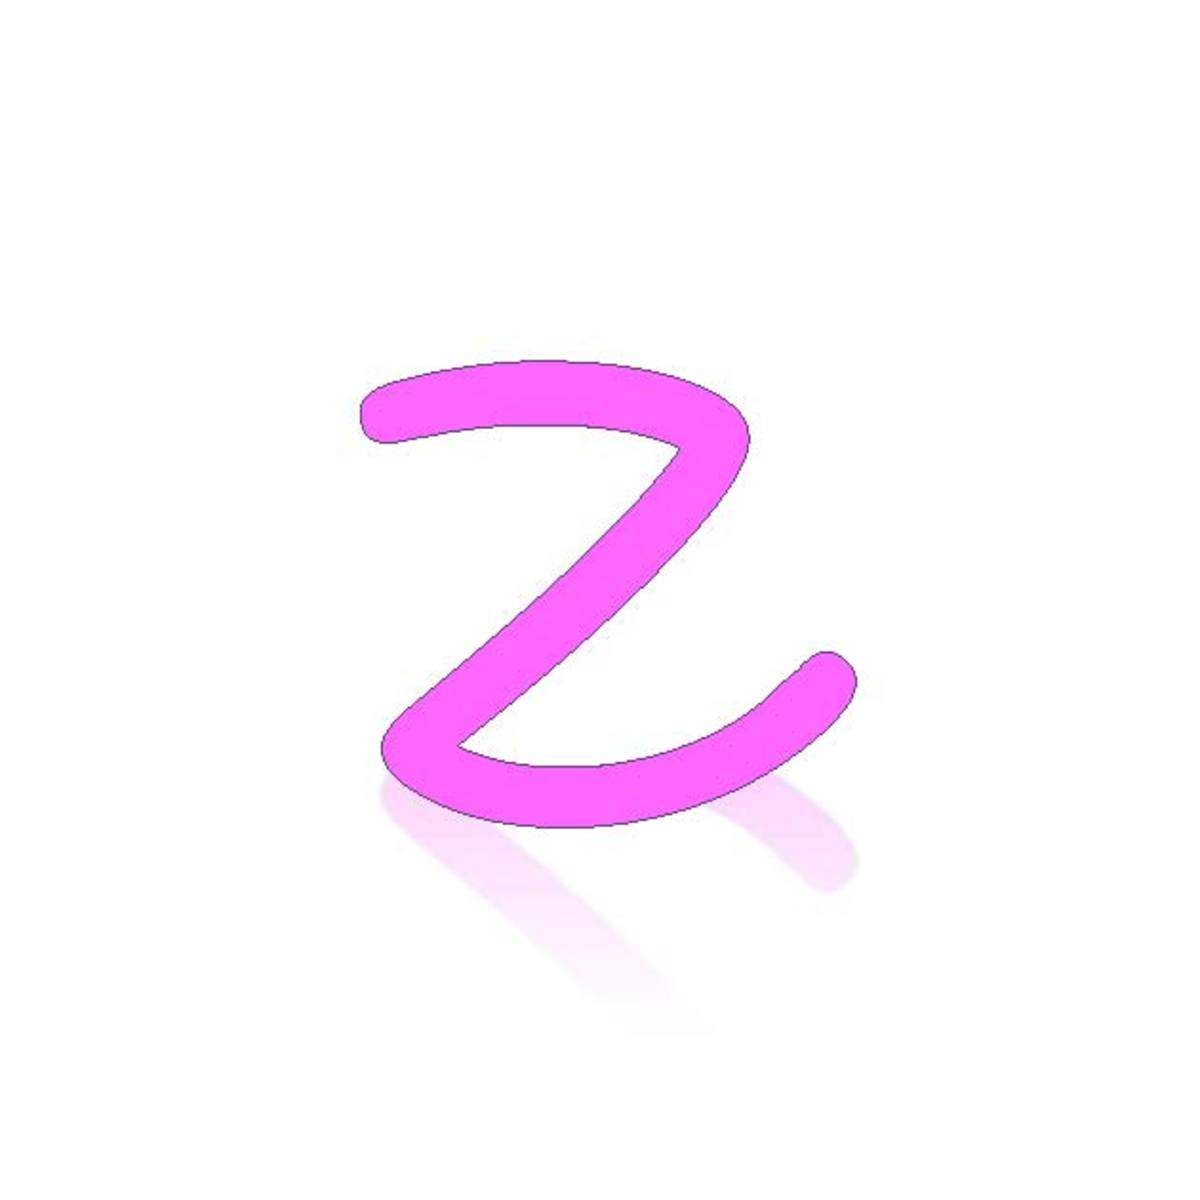 Acrostic Name Poems for Girls Names Starting with Z